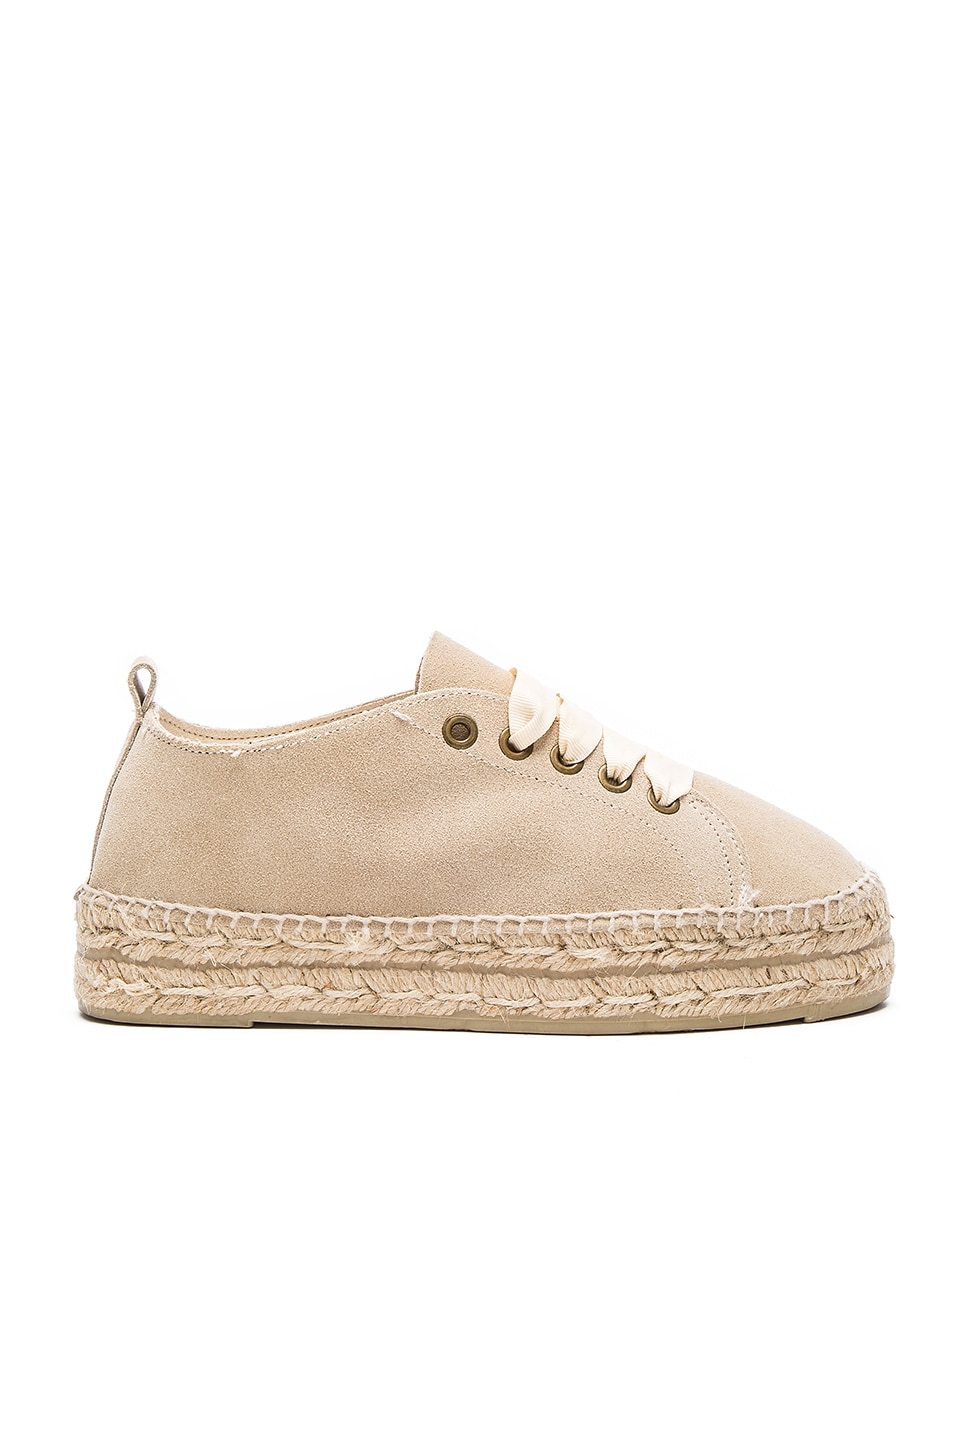 MANEBI Hamptons lace-up espadrilles